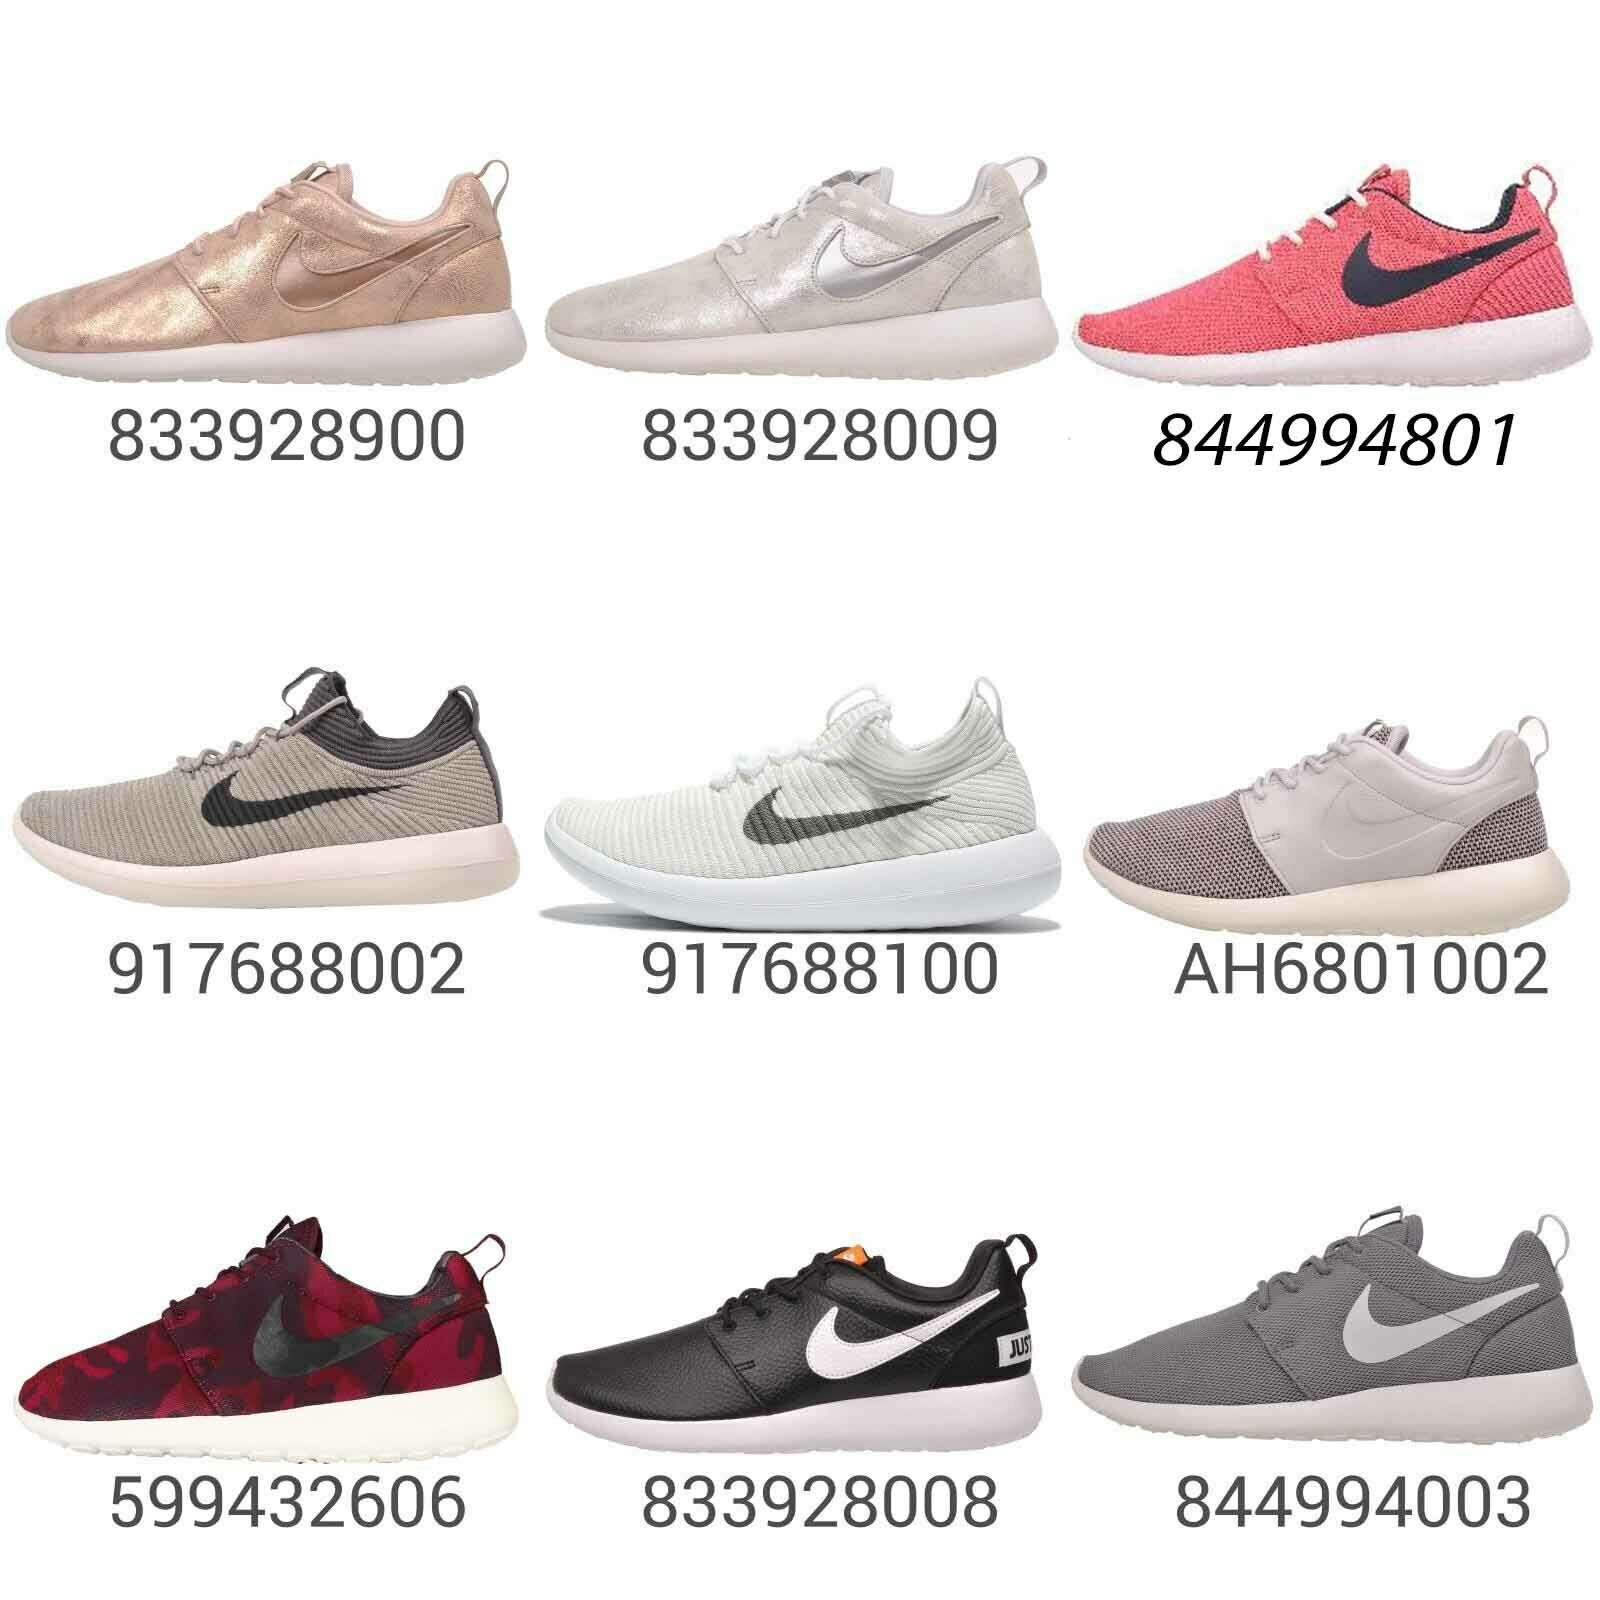 Nike femmes Roshe One   Two PRM   SE   V2 1 Wmns chaussures baskets Pick 1